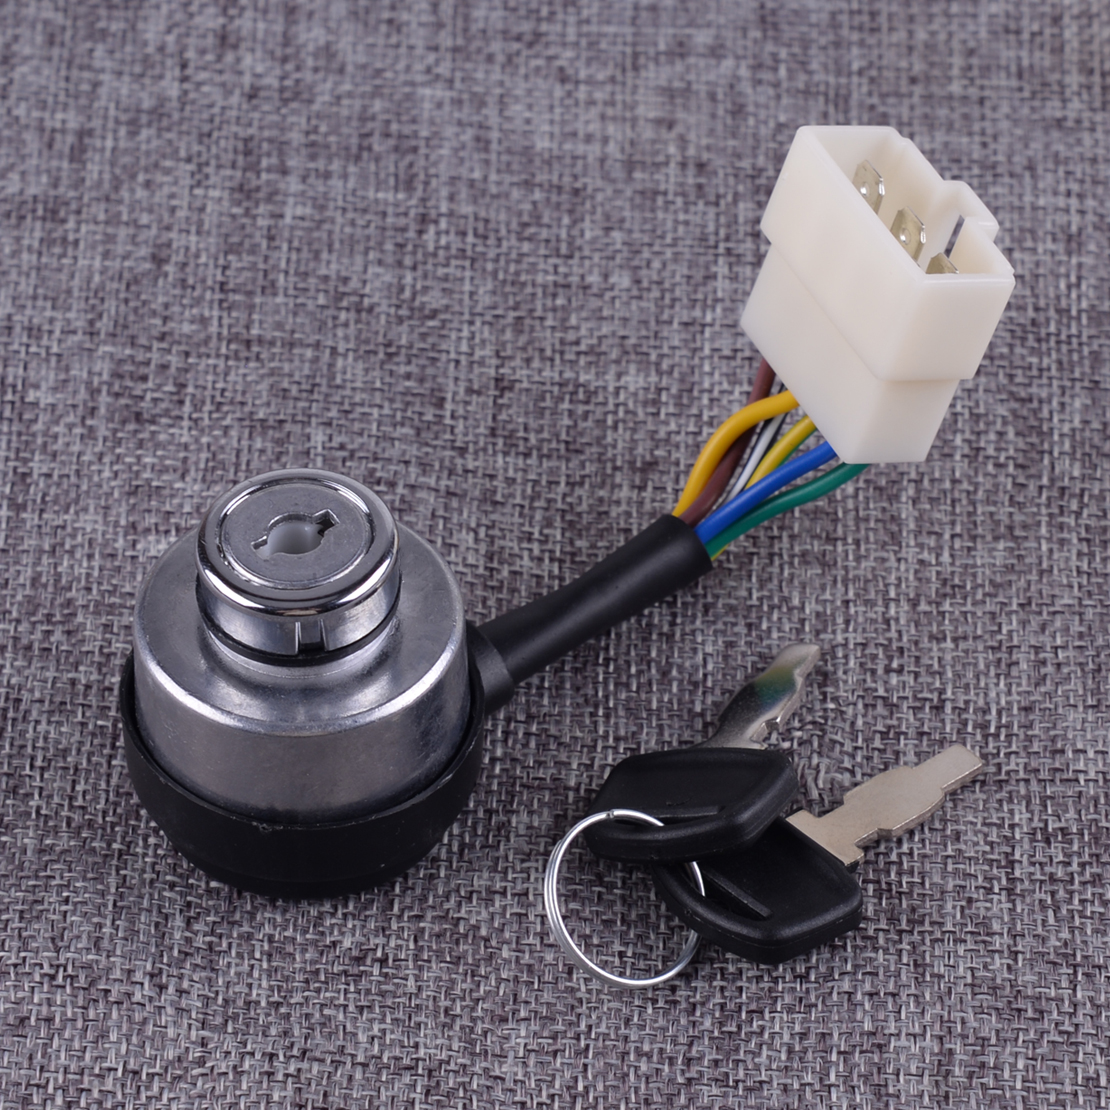 DWCX Car Portable Chinese Gasoline Diesel Generator Gas Ignition Switch On Off Start Ignition Key Lock Combination 6 Wire Way